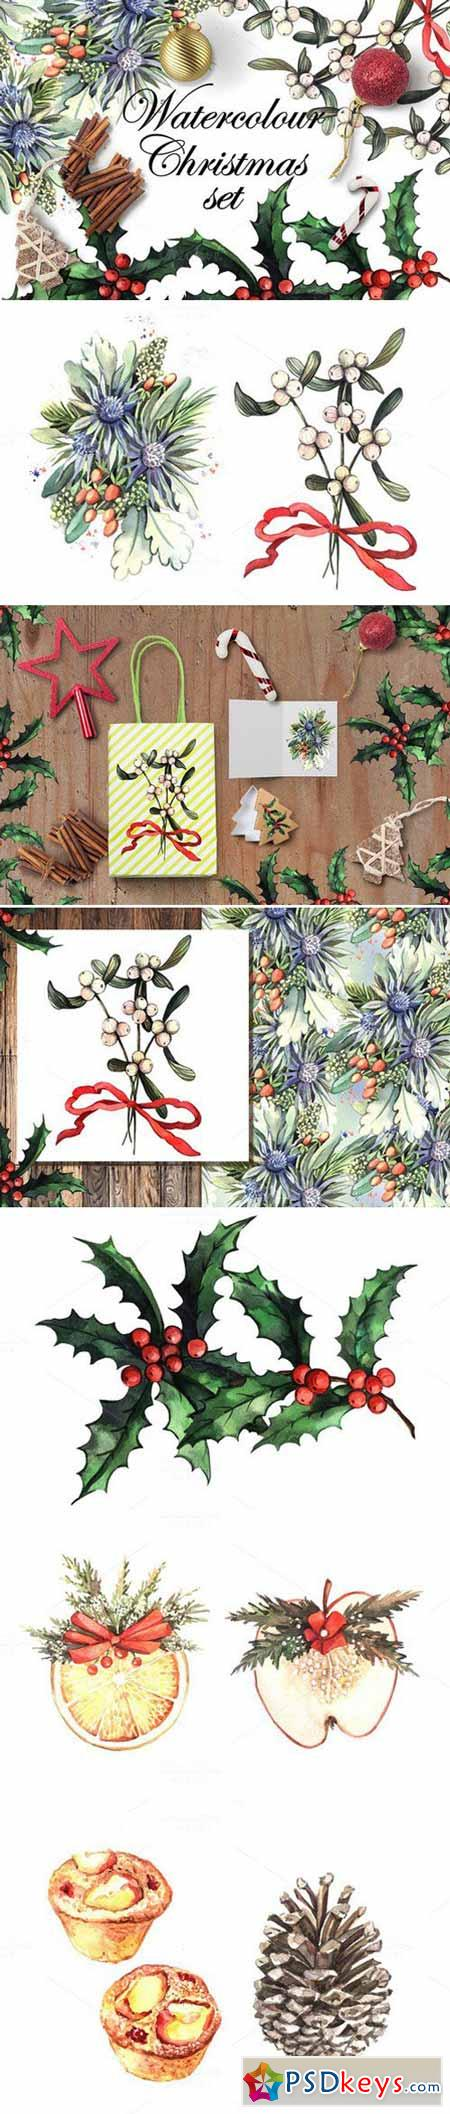 Watercolour Christmas set 448402